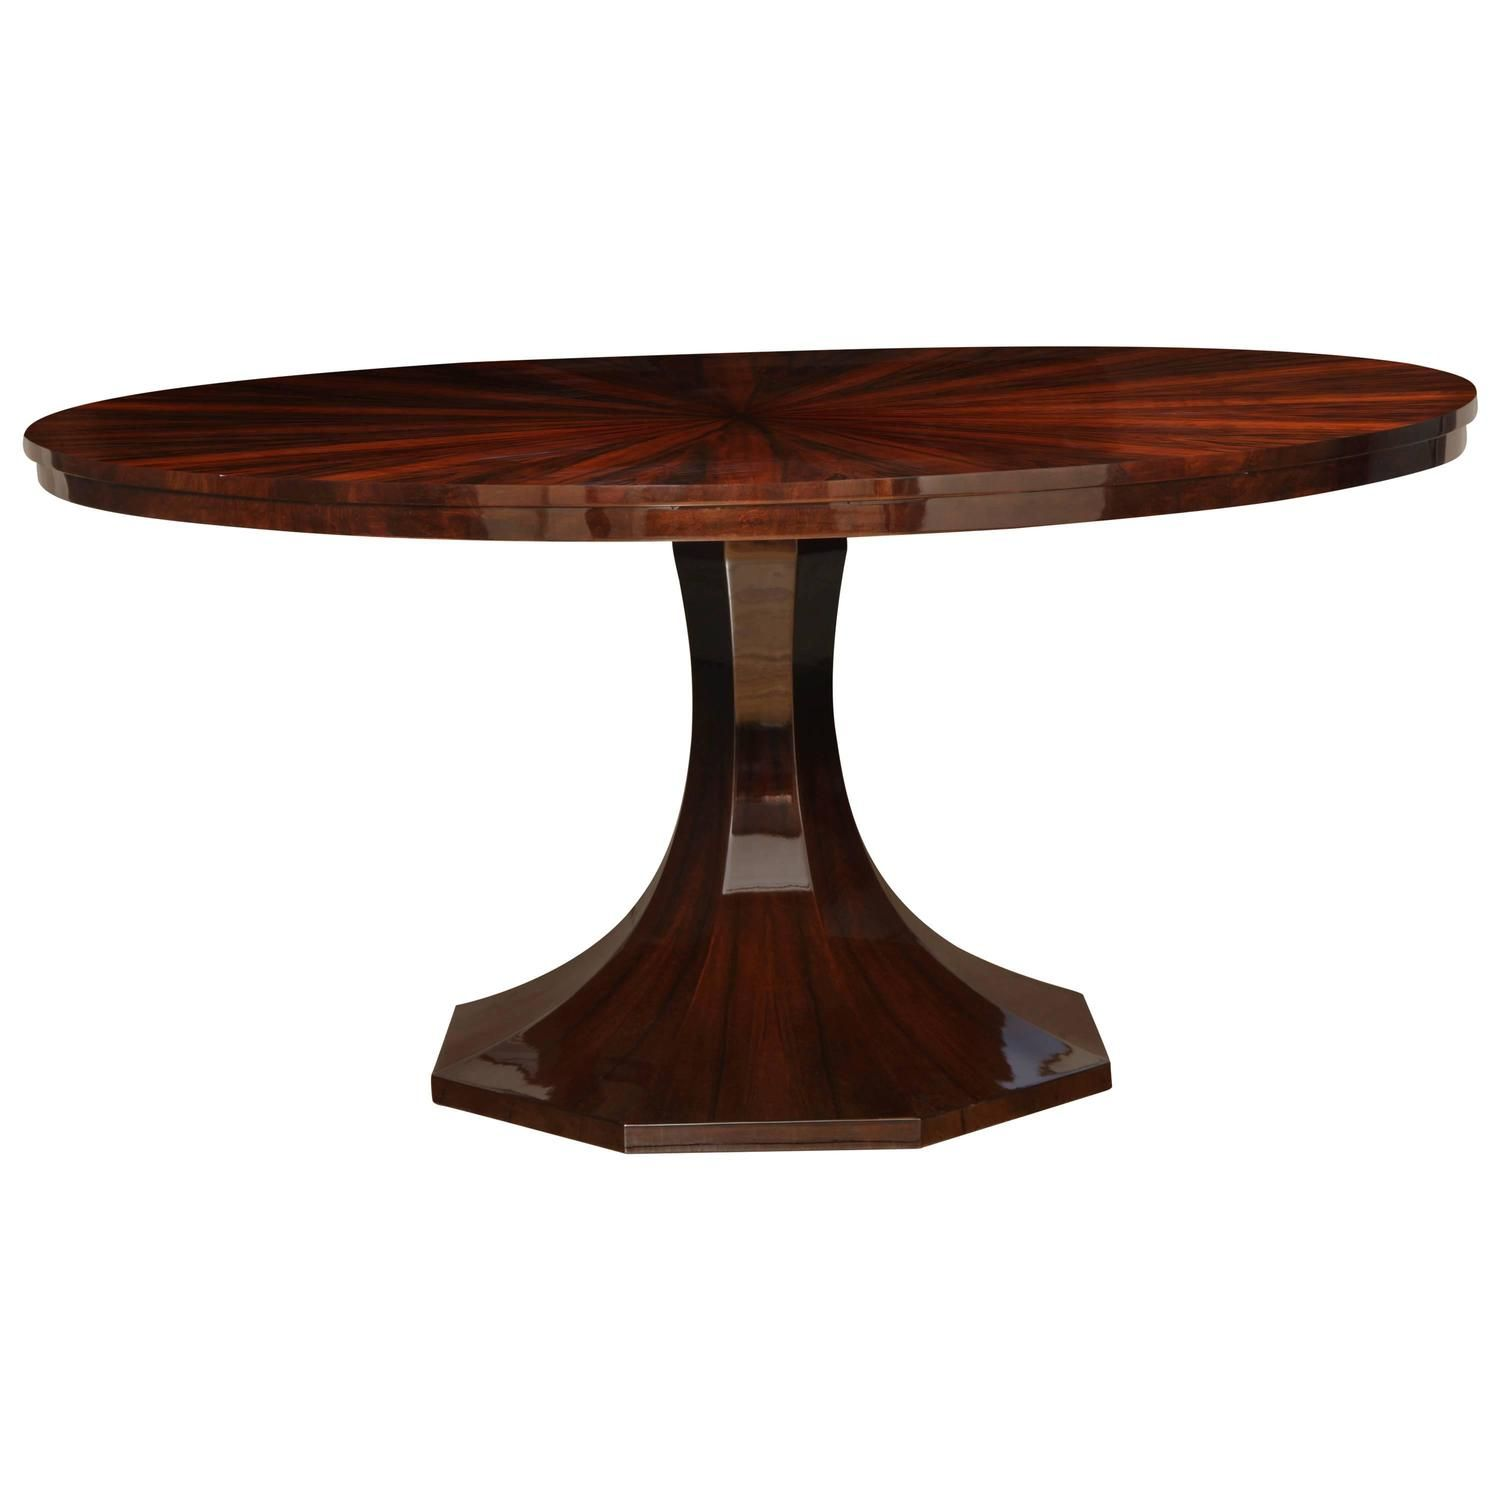 Art Deco Round Pedestal Dining Table In Black Forest